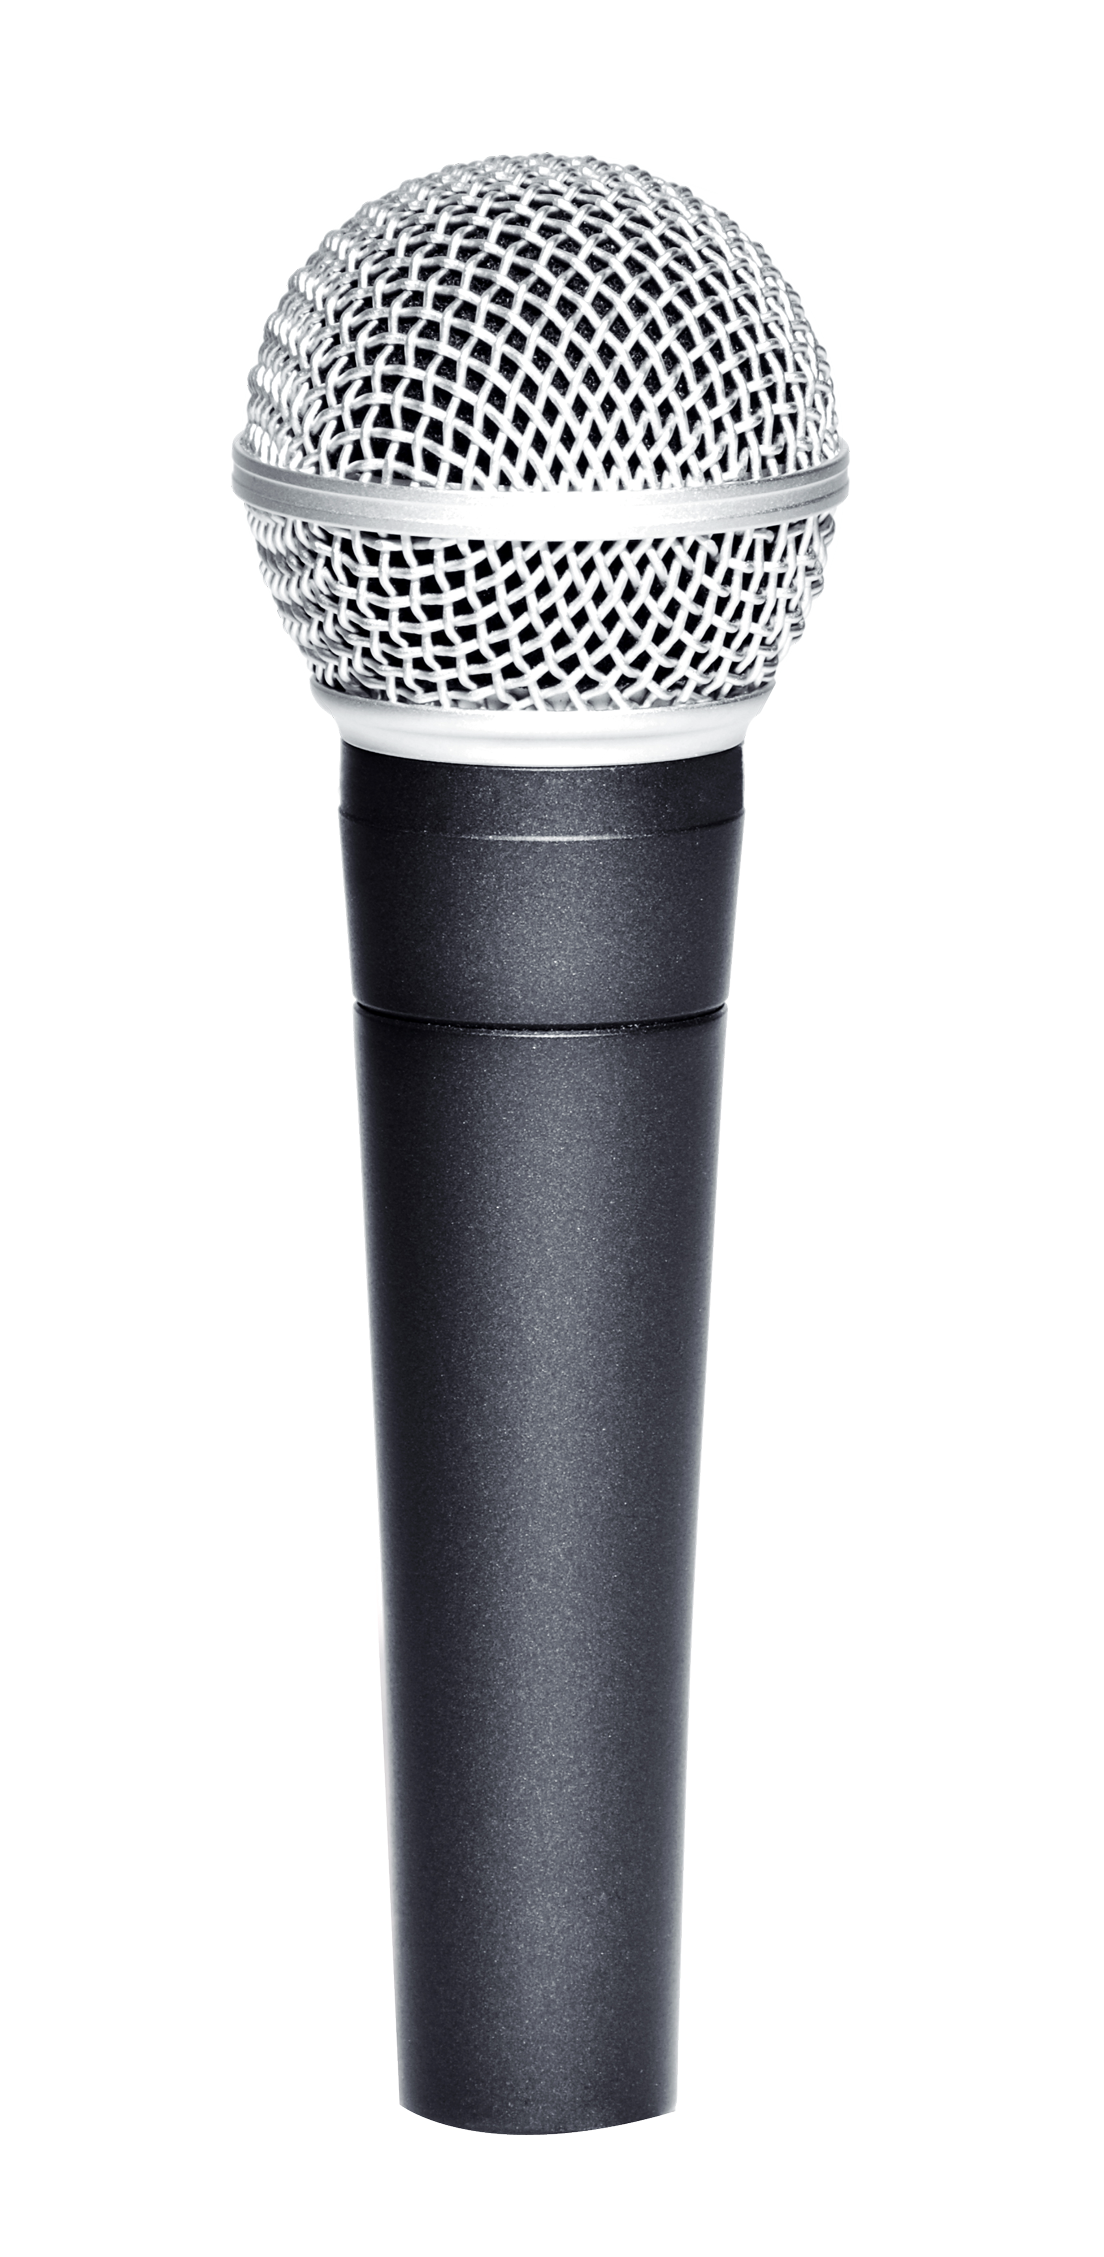 Mic png. Microphone images transparent free